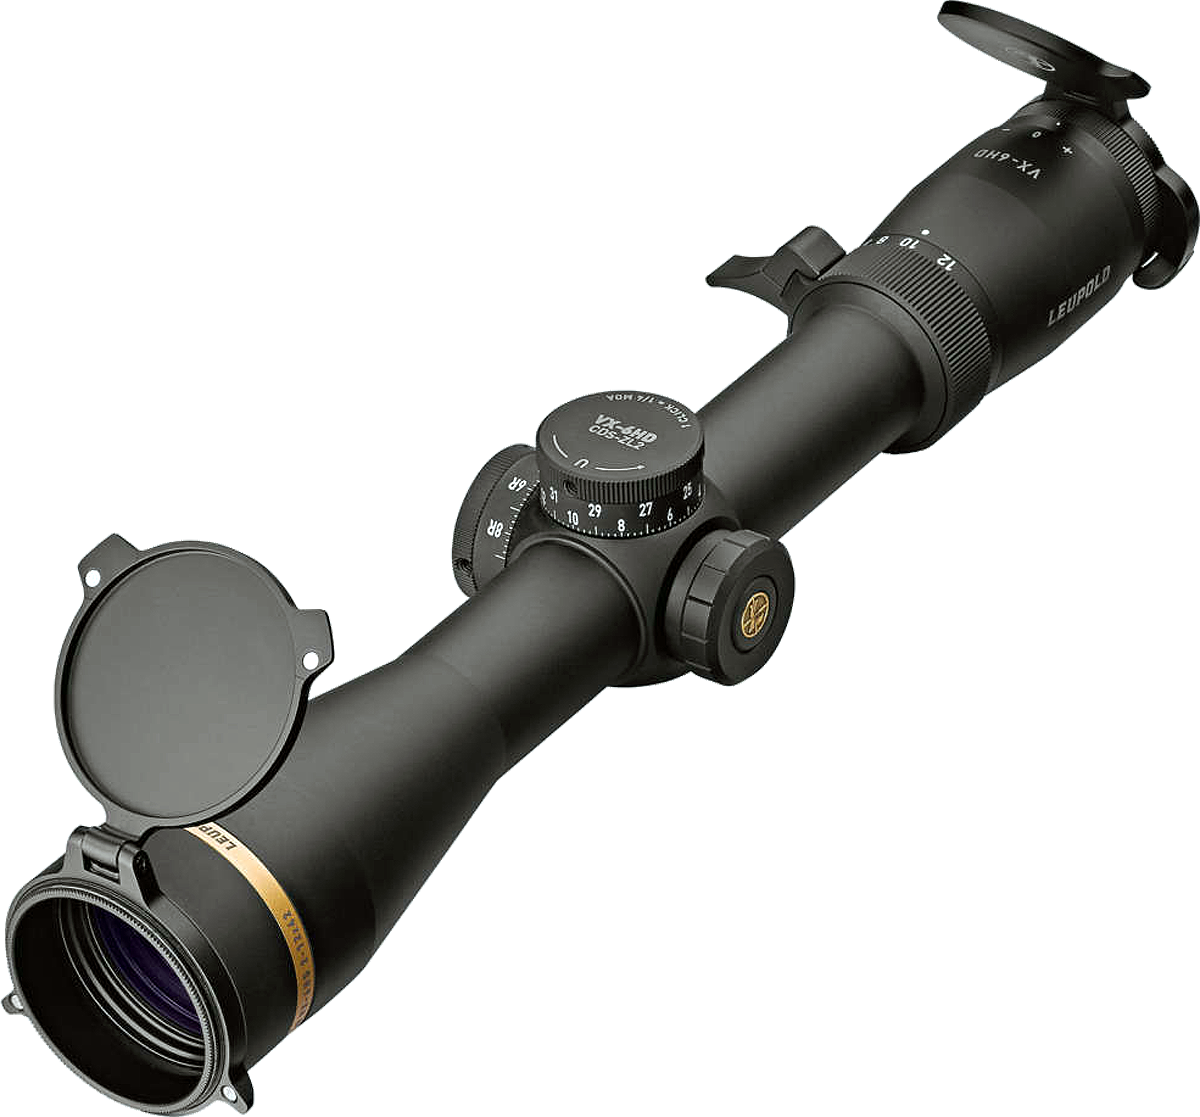 Leupold & Stevens VX-6HD, 30MM Matte Black